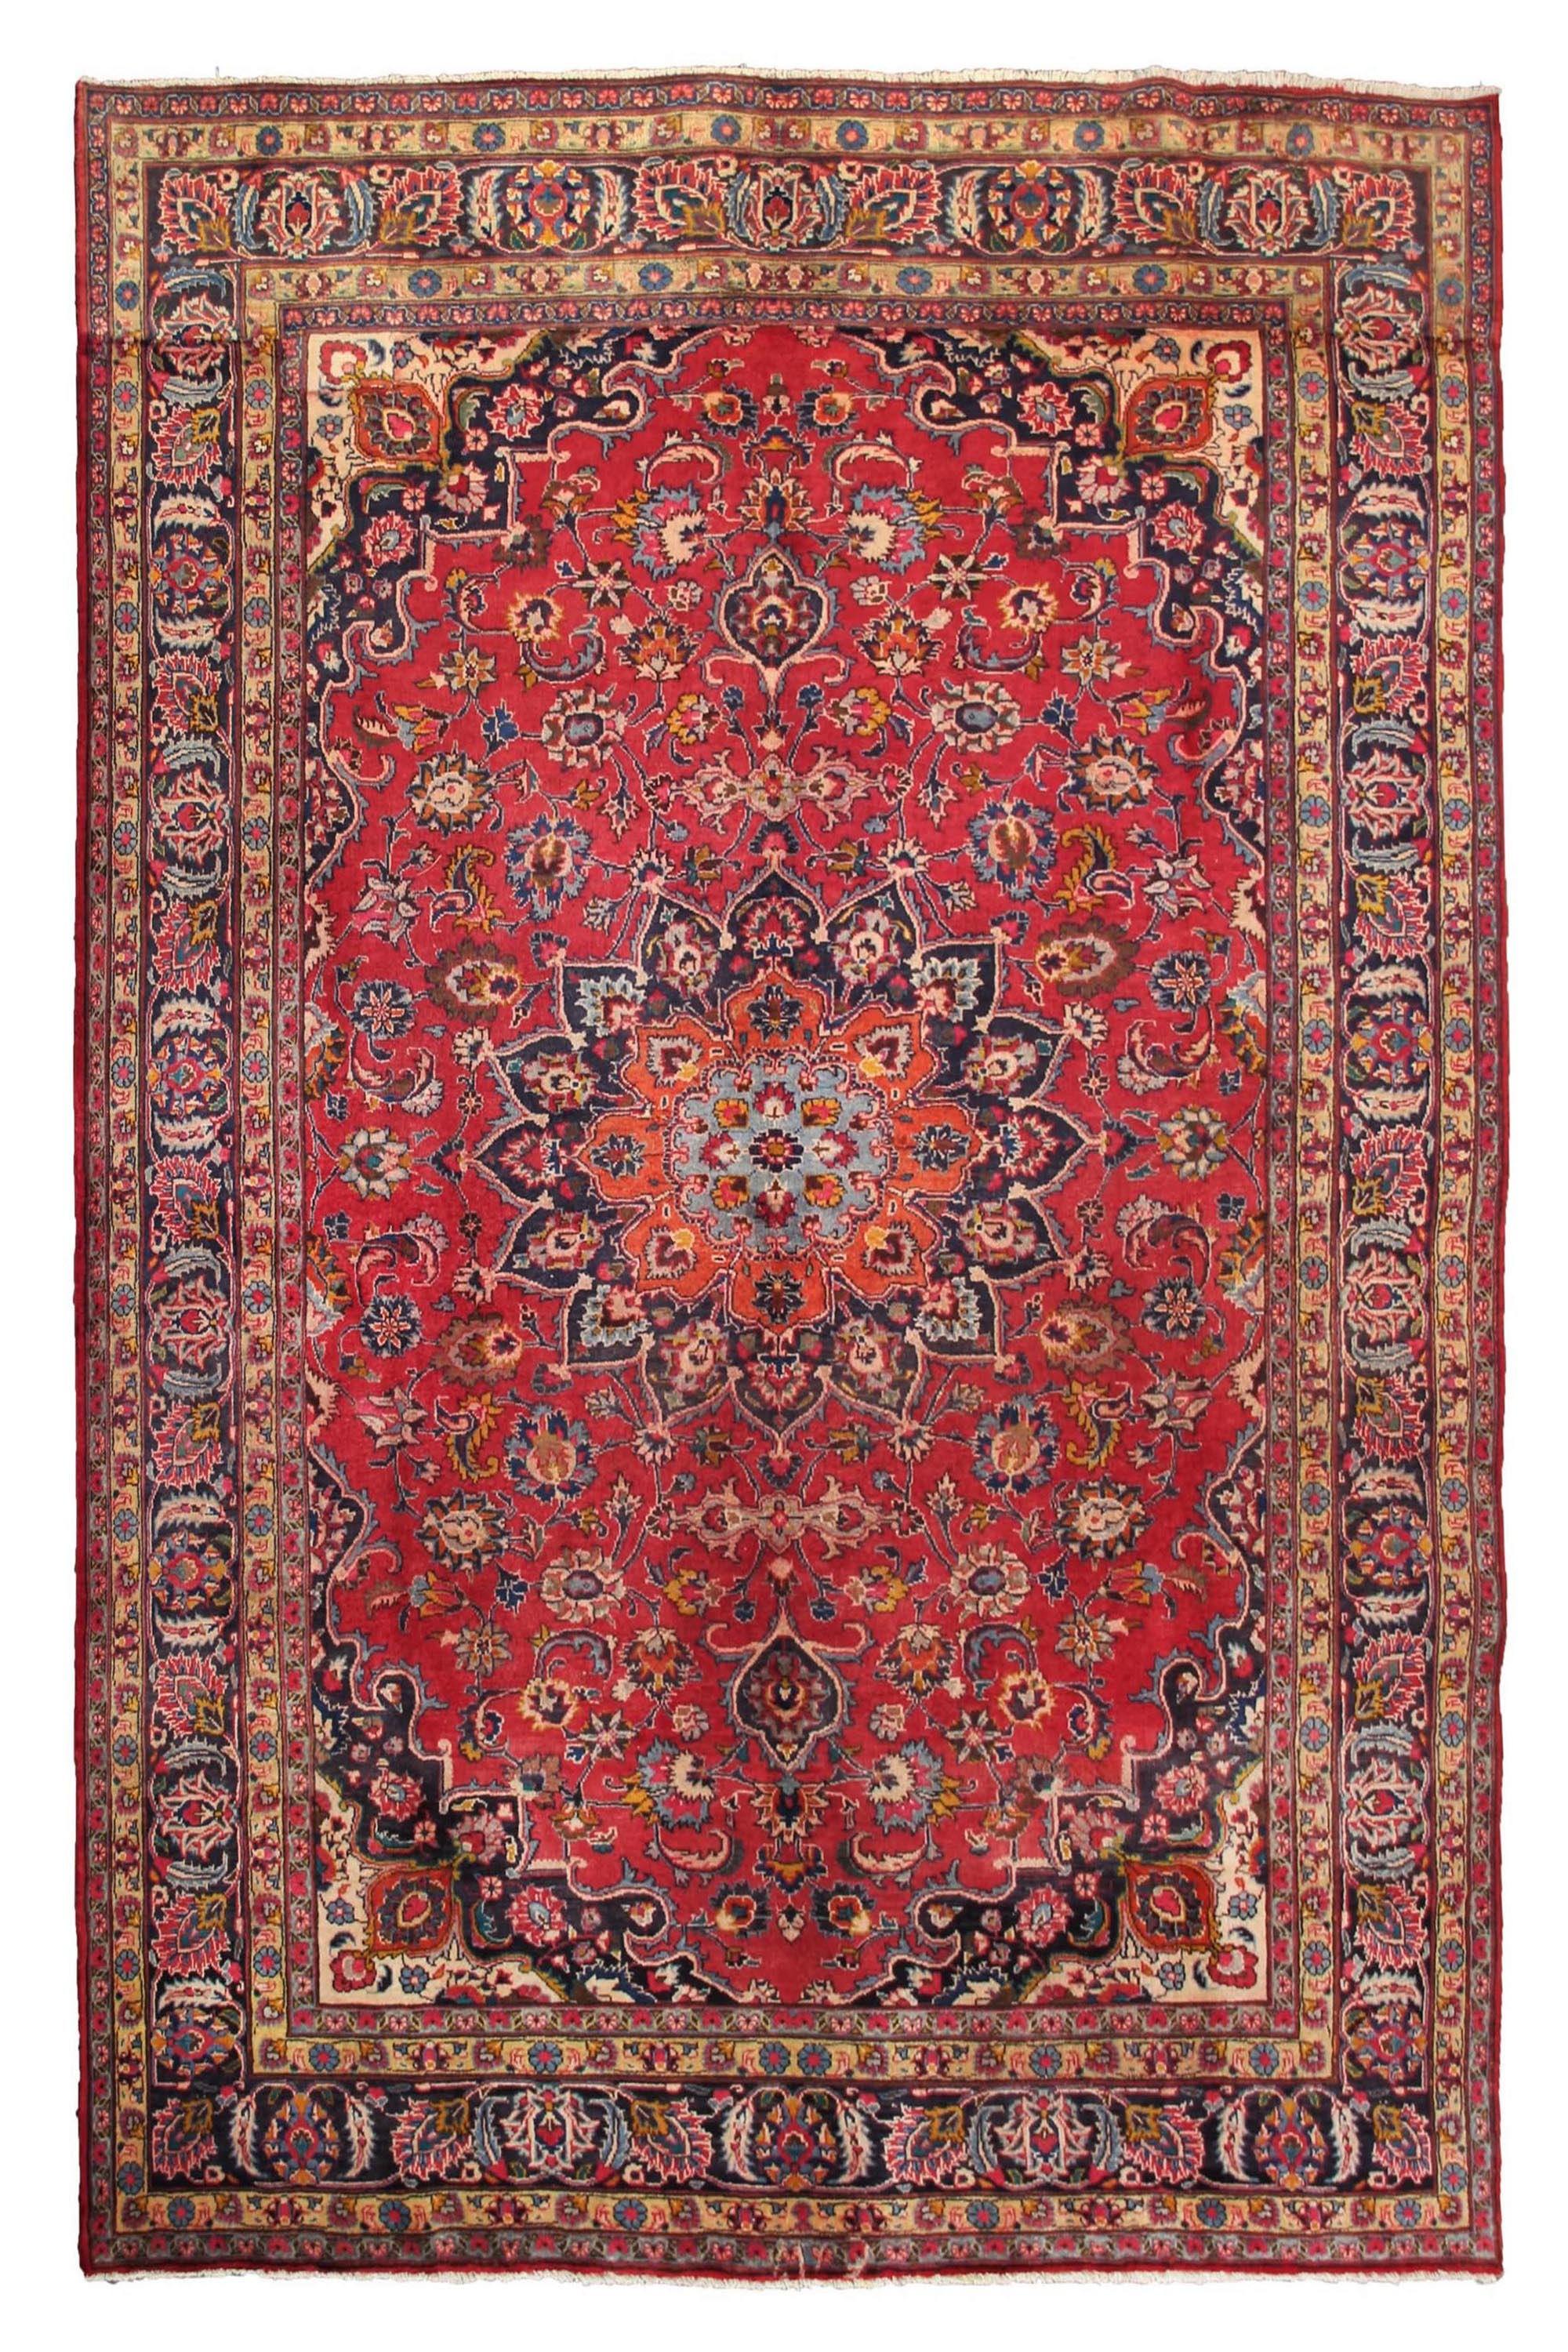 Hand Knotted Vintage Mashad Persian Rug, 198 x 295 cm